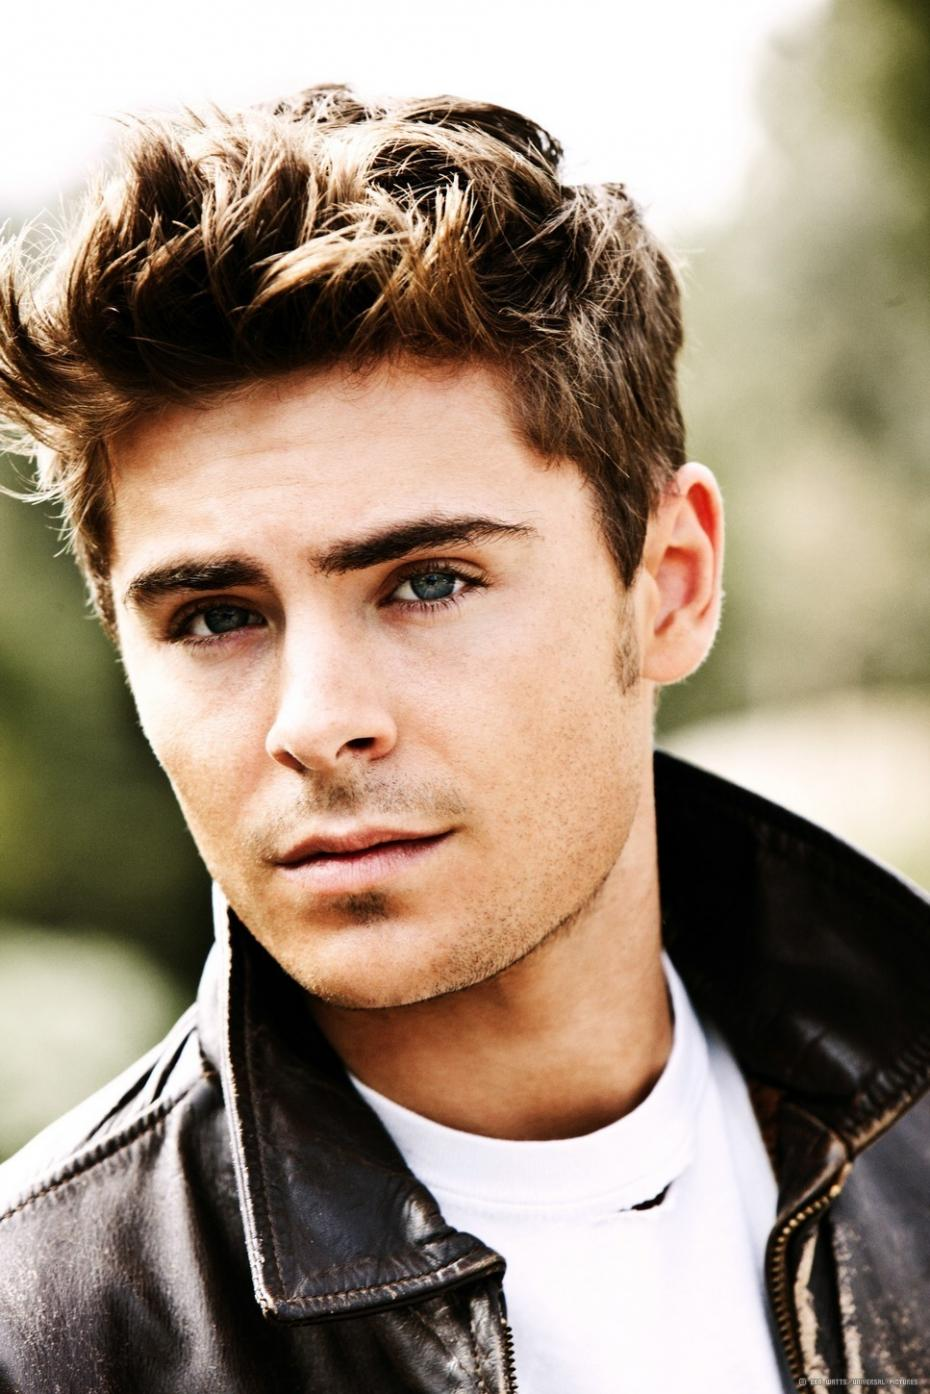 Zack Efron Fauxhawk Hairstyles_03 - Latest Hair Styles - Cute ...